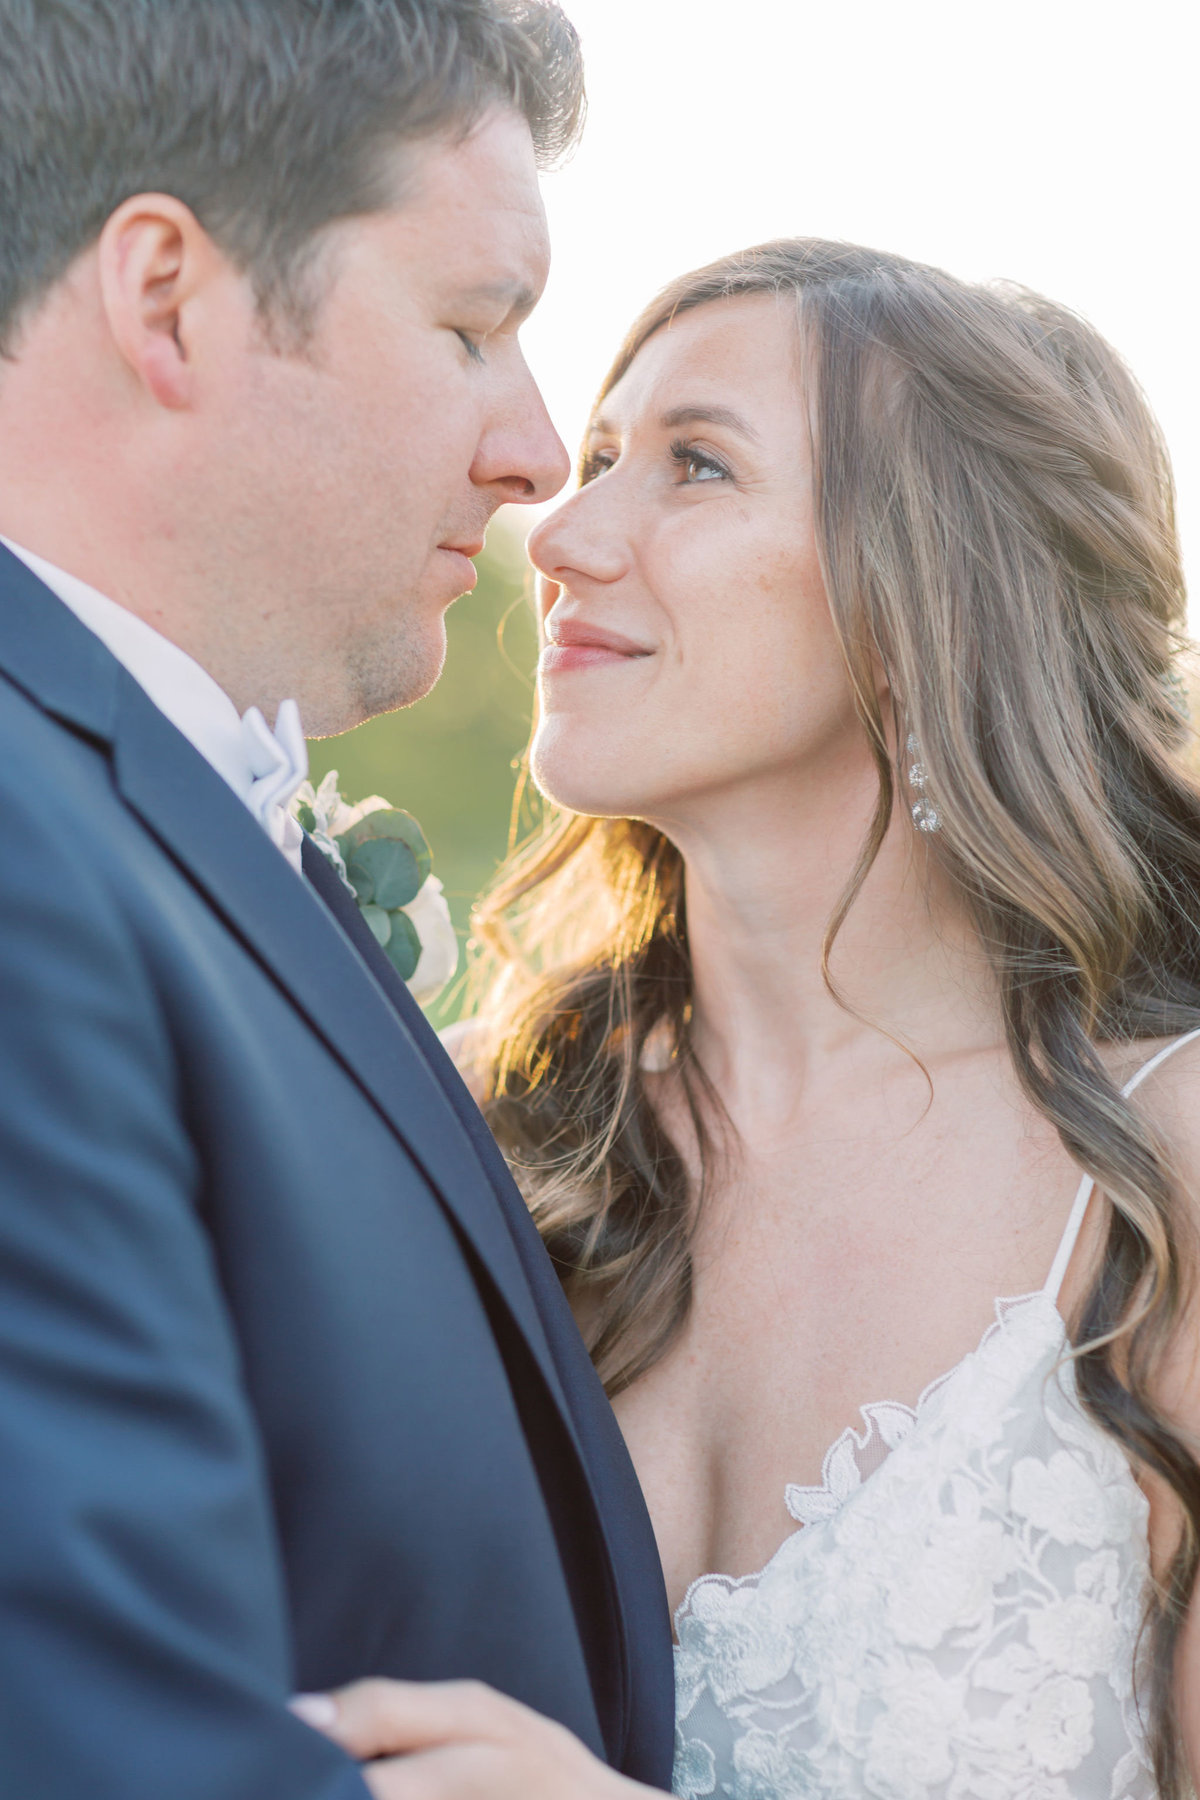 TiffaneyChildsPhotography-ChicagoWeddingPhotographer-Chloe+Jon-HinsdaleCountryClubWedding-BridalPortraits-65